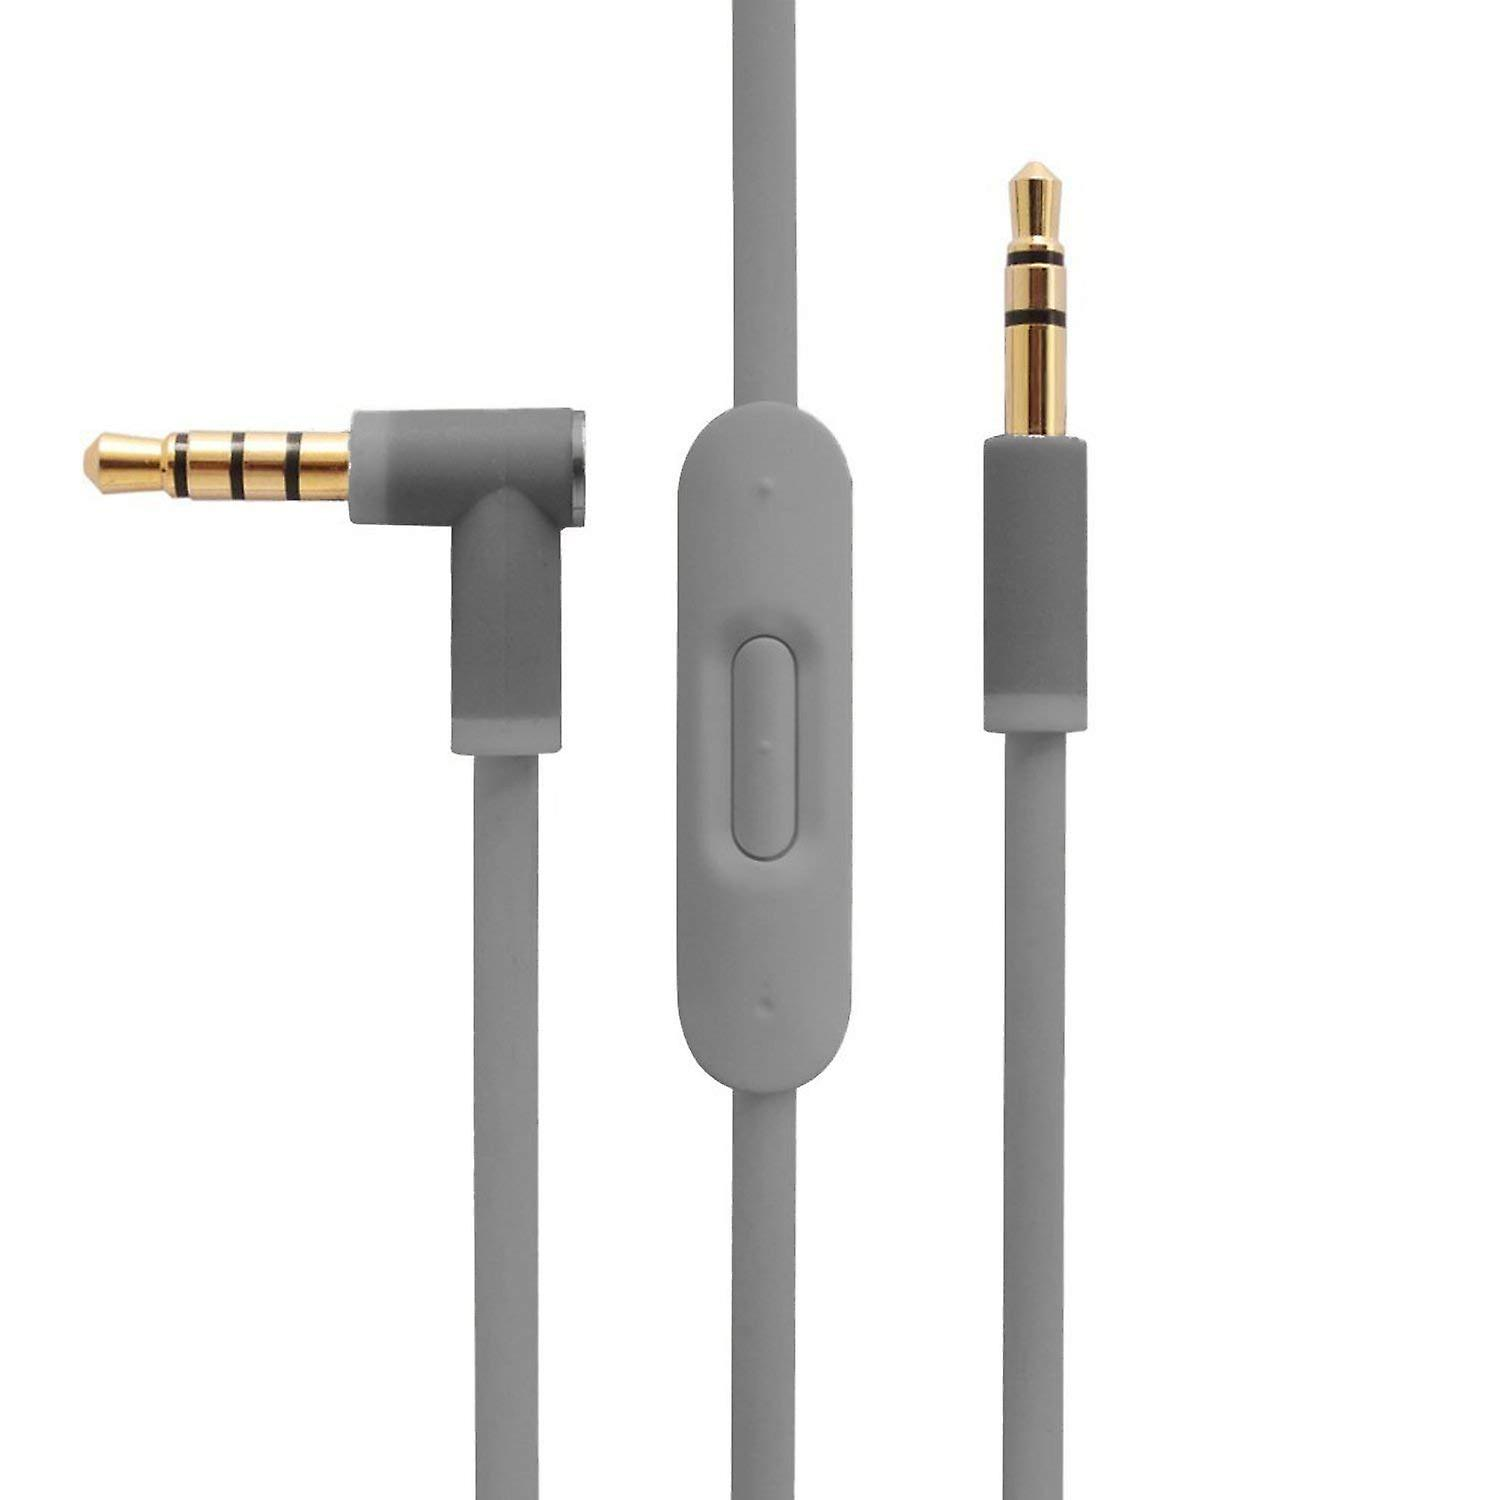 REYTID Grey Audio Cable Compatible with Beats by Dr Dre Solo2 / Solo2 Wireless Headphones with Inline Remote, Volume Control and Microphone - Compatible with iPhone & Android